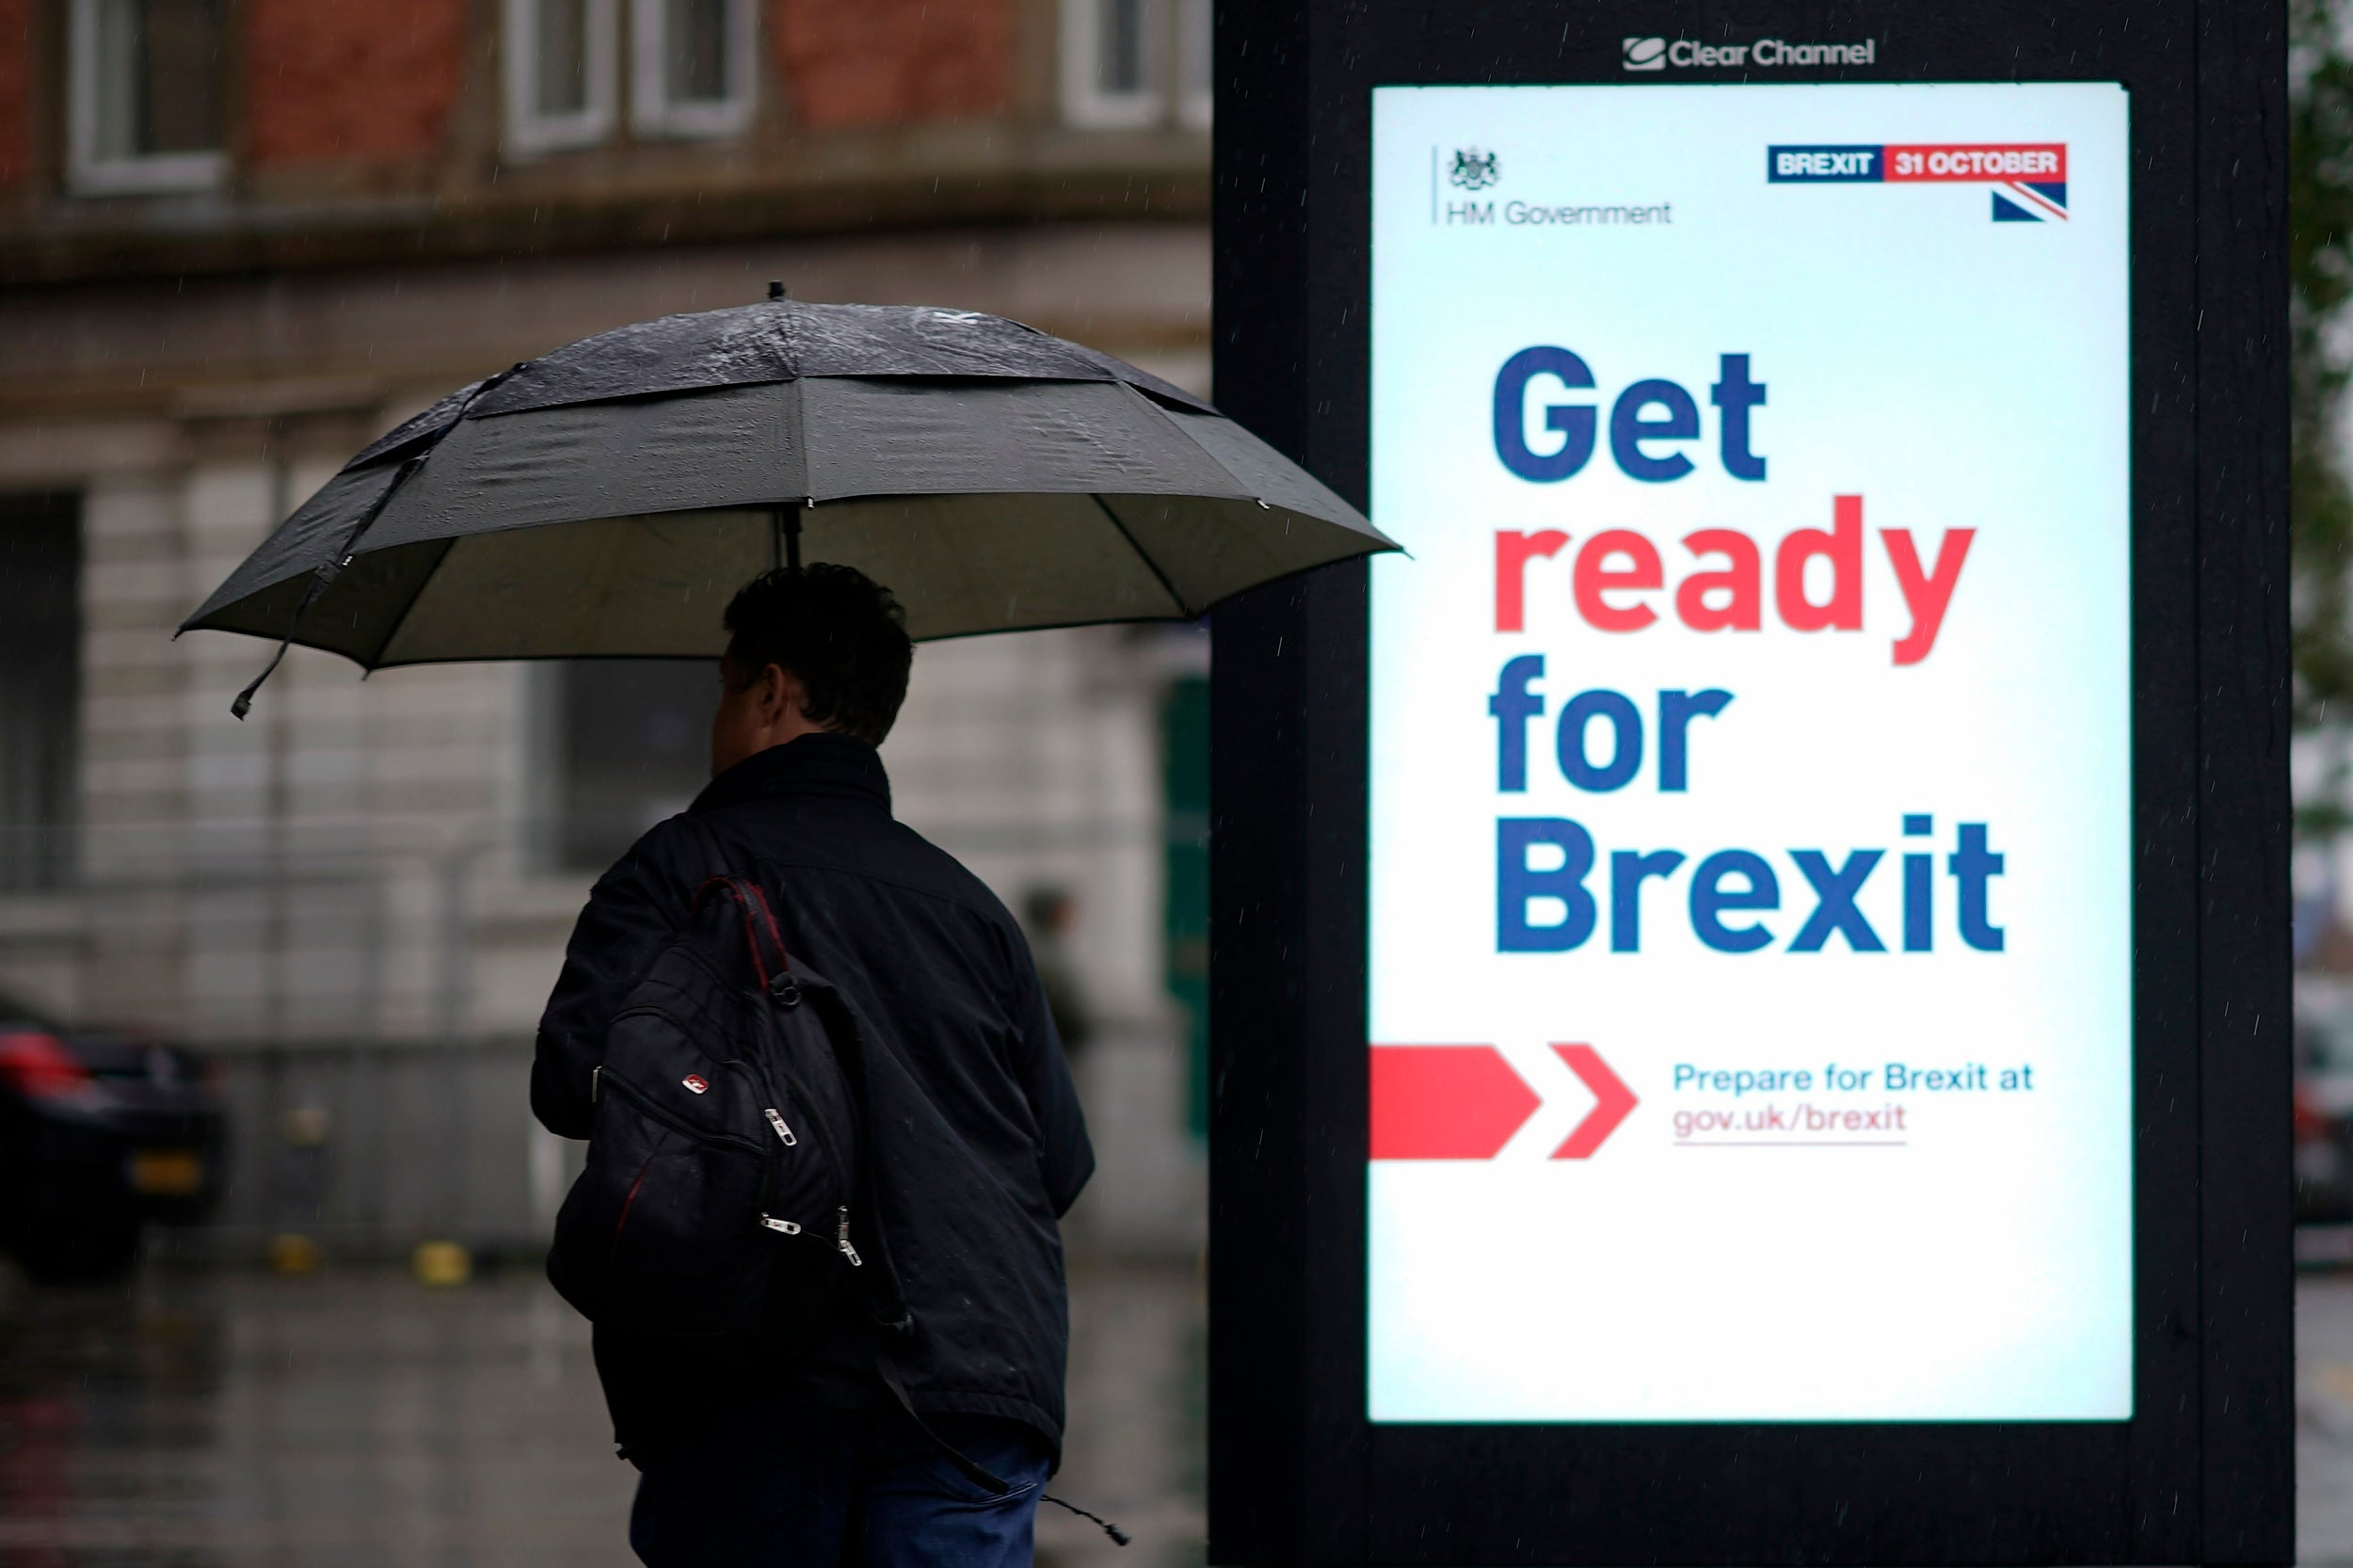 'Get Ready for Brexit' campaign spent £46m of taxpayers' cash without making a difference, watchdog finds